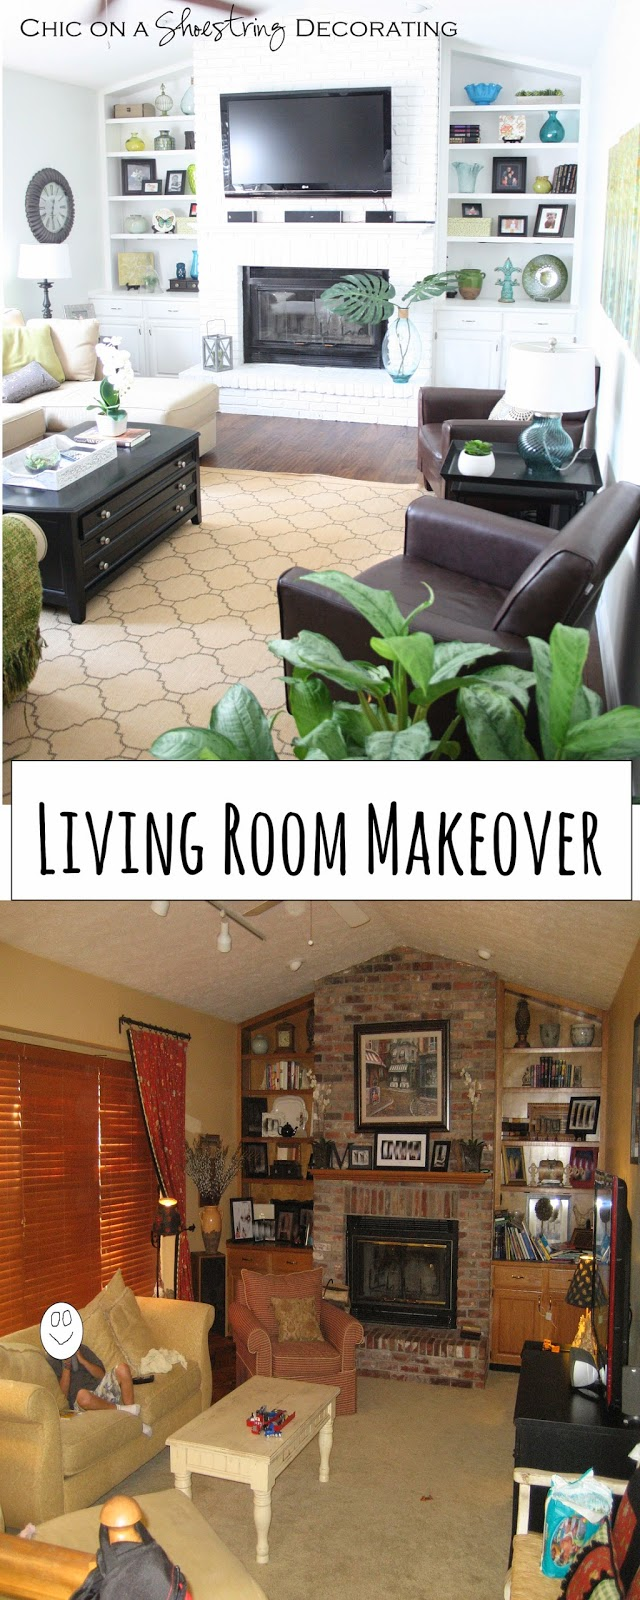 living room makeover by Chic on a Shoestring Decorating blog